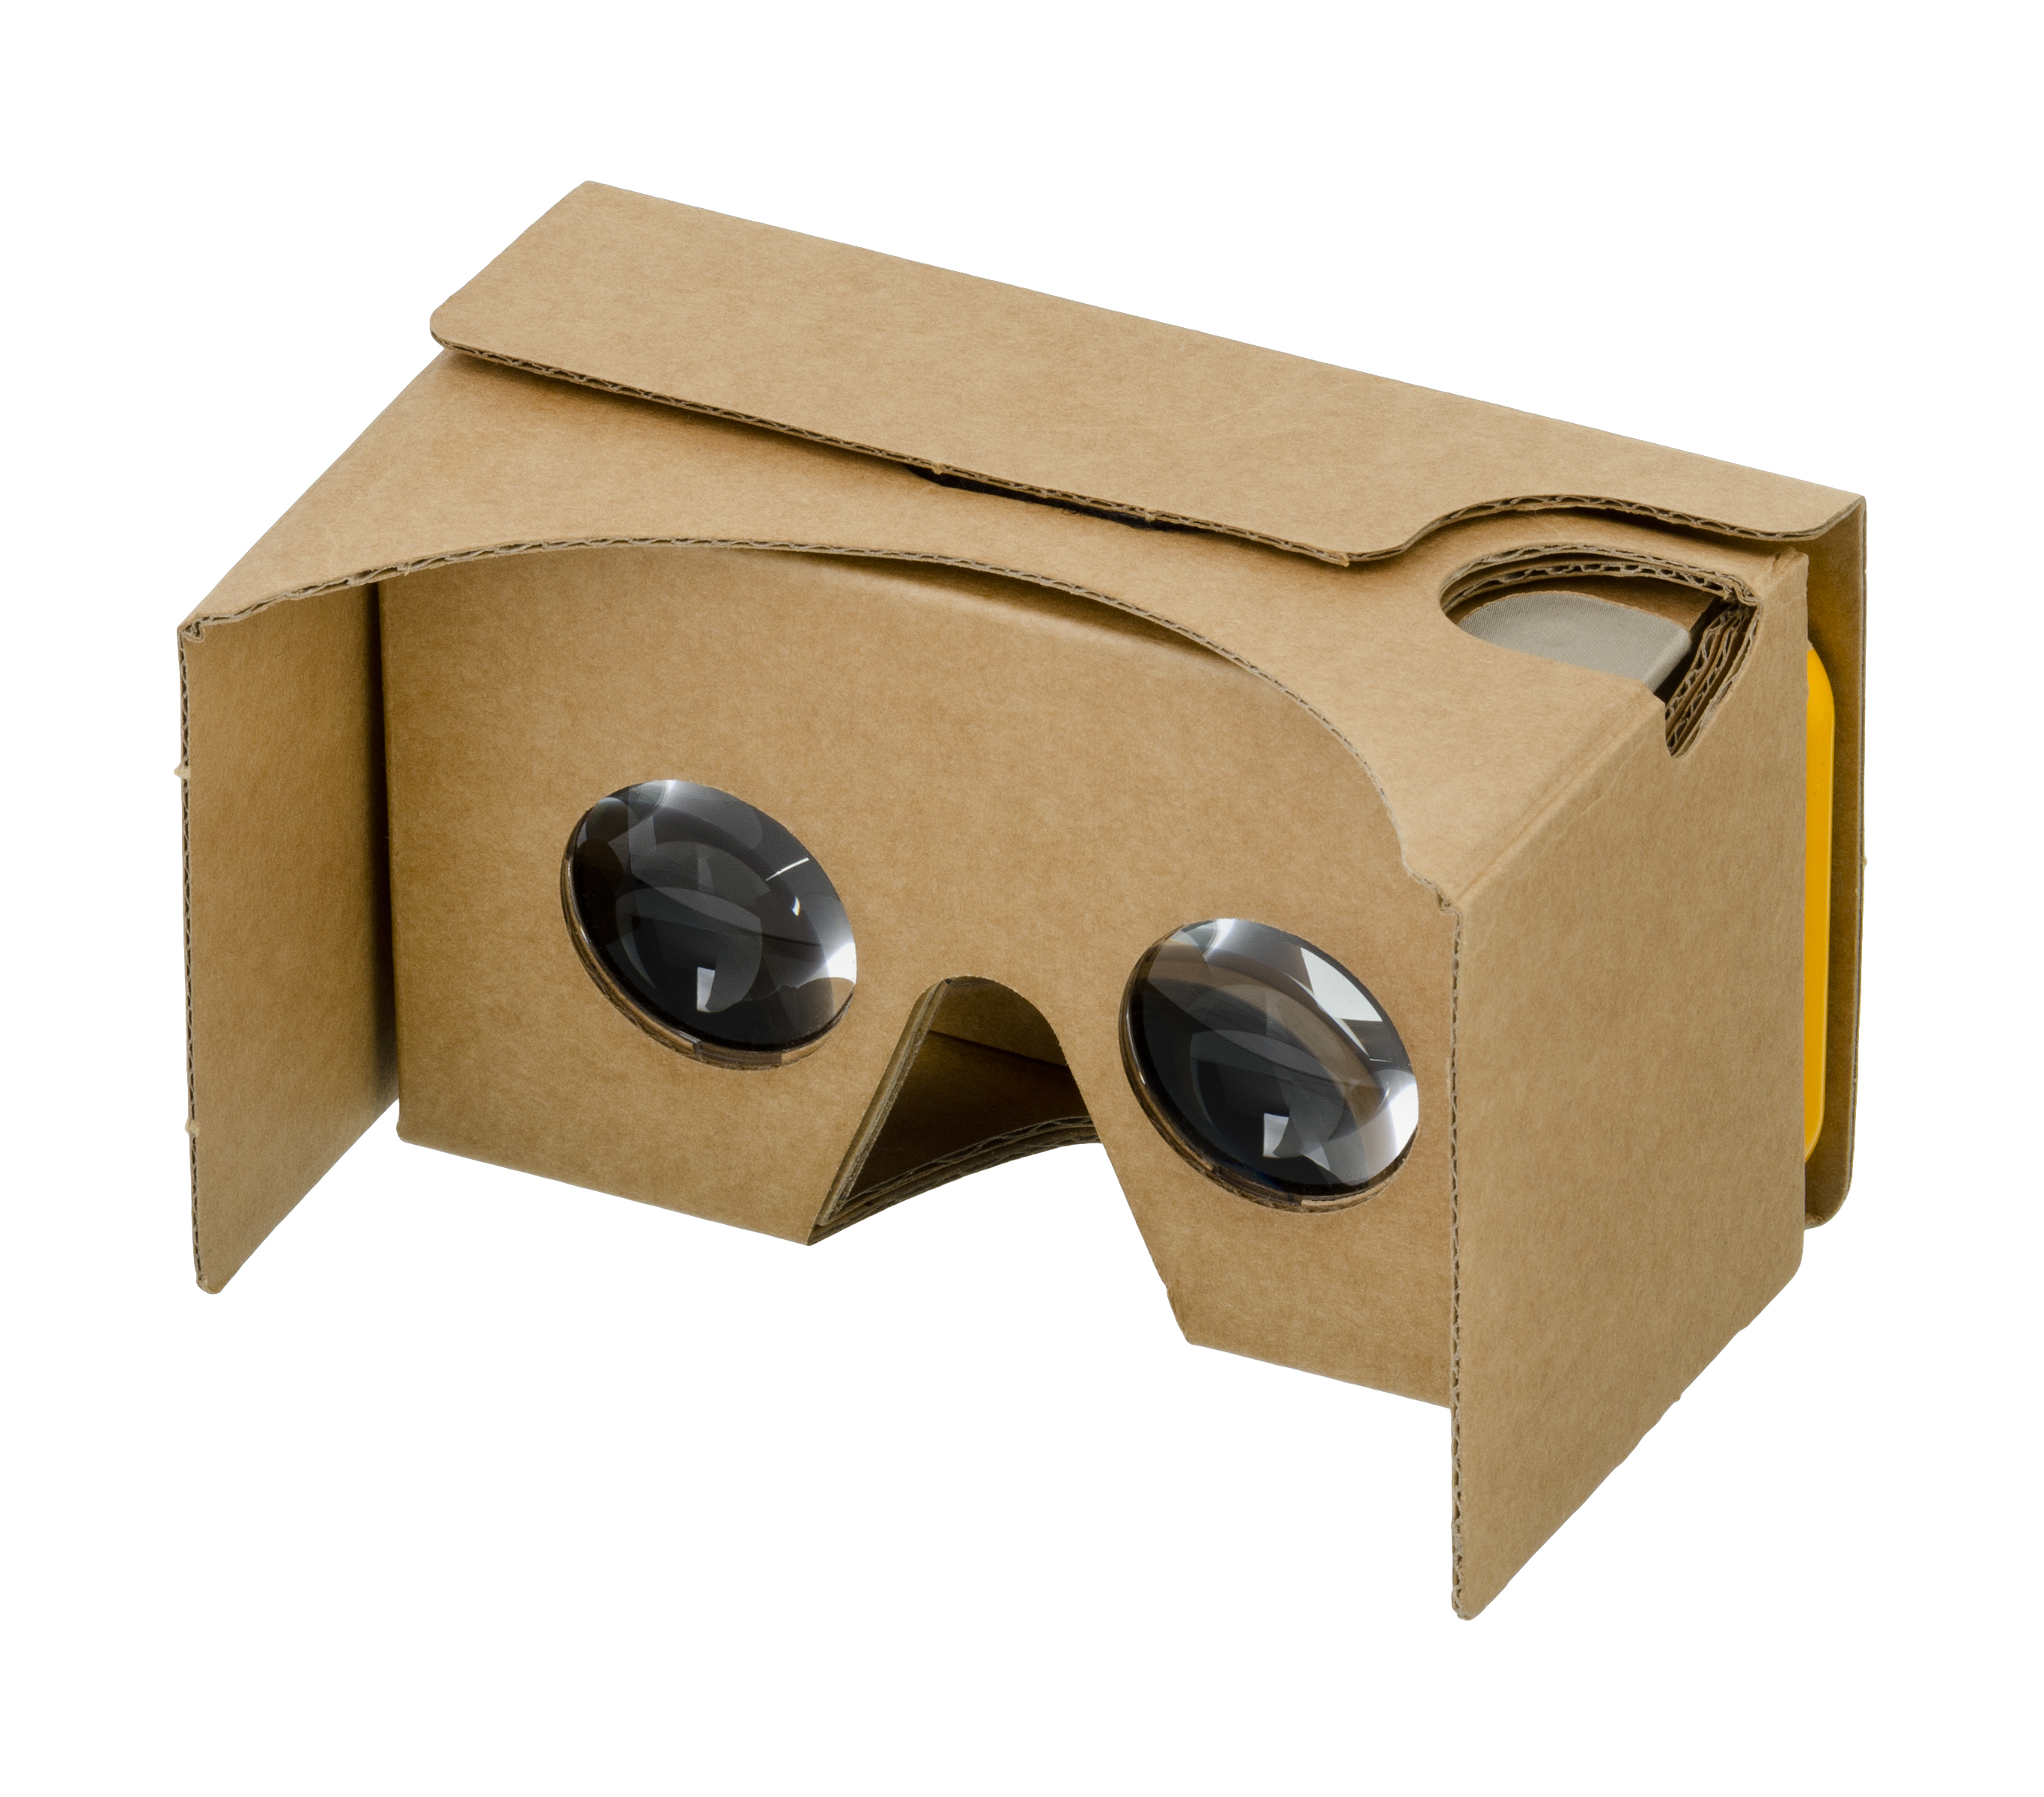 https://upload.wikimedia.org/wikipedia/commons/a/ad/Google-Cardboard.jpg